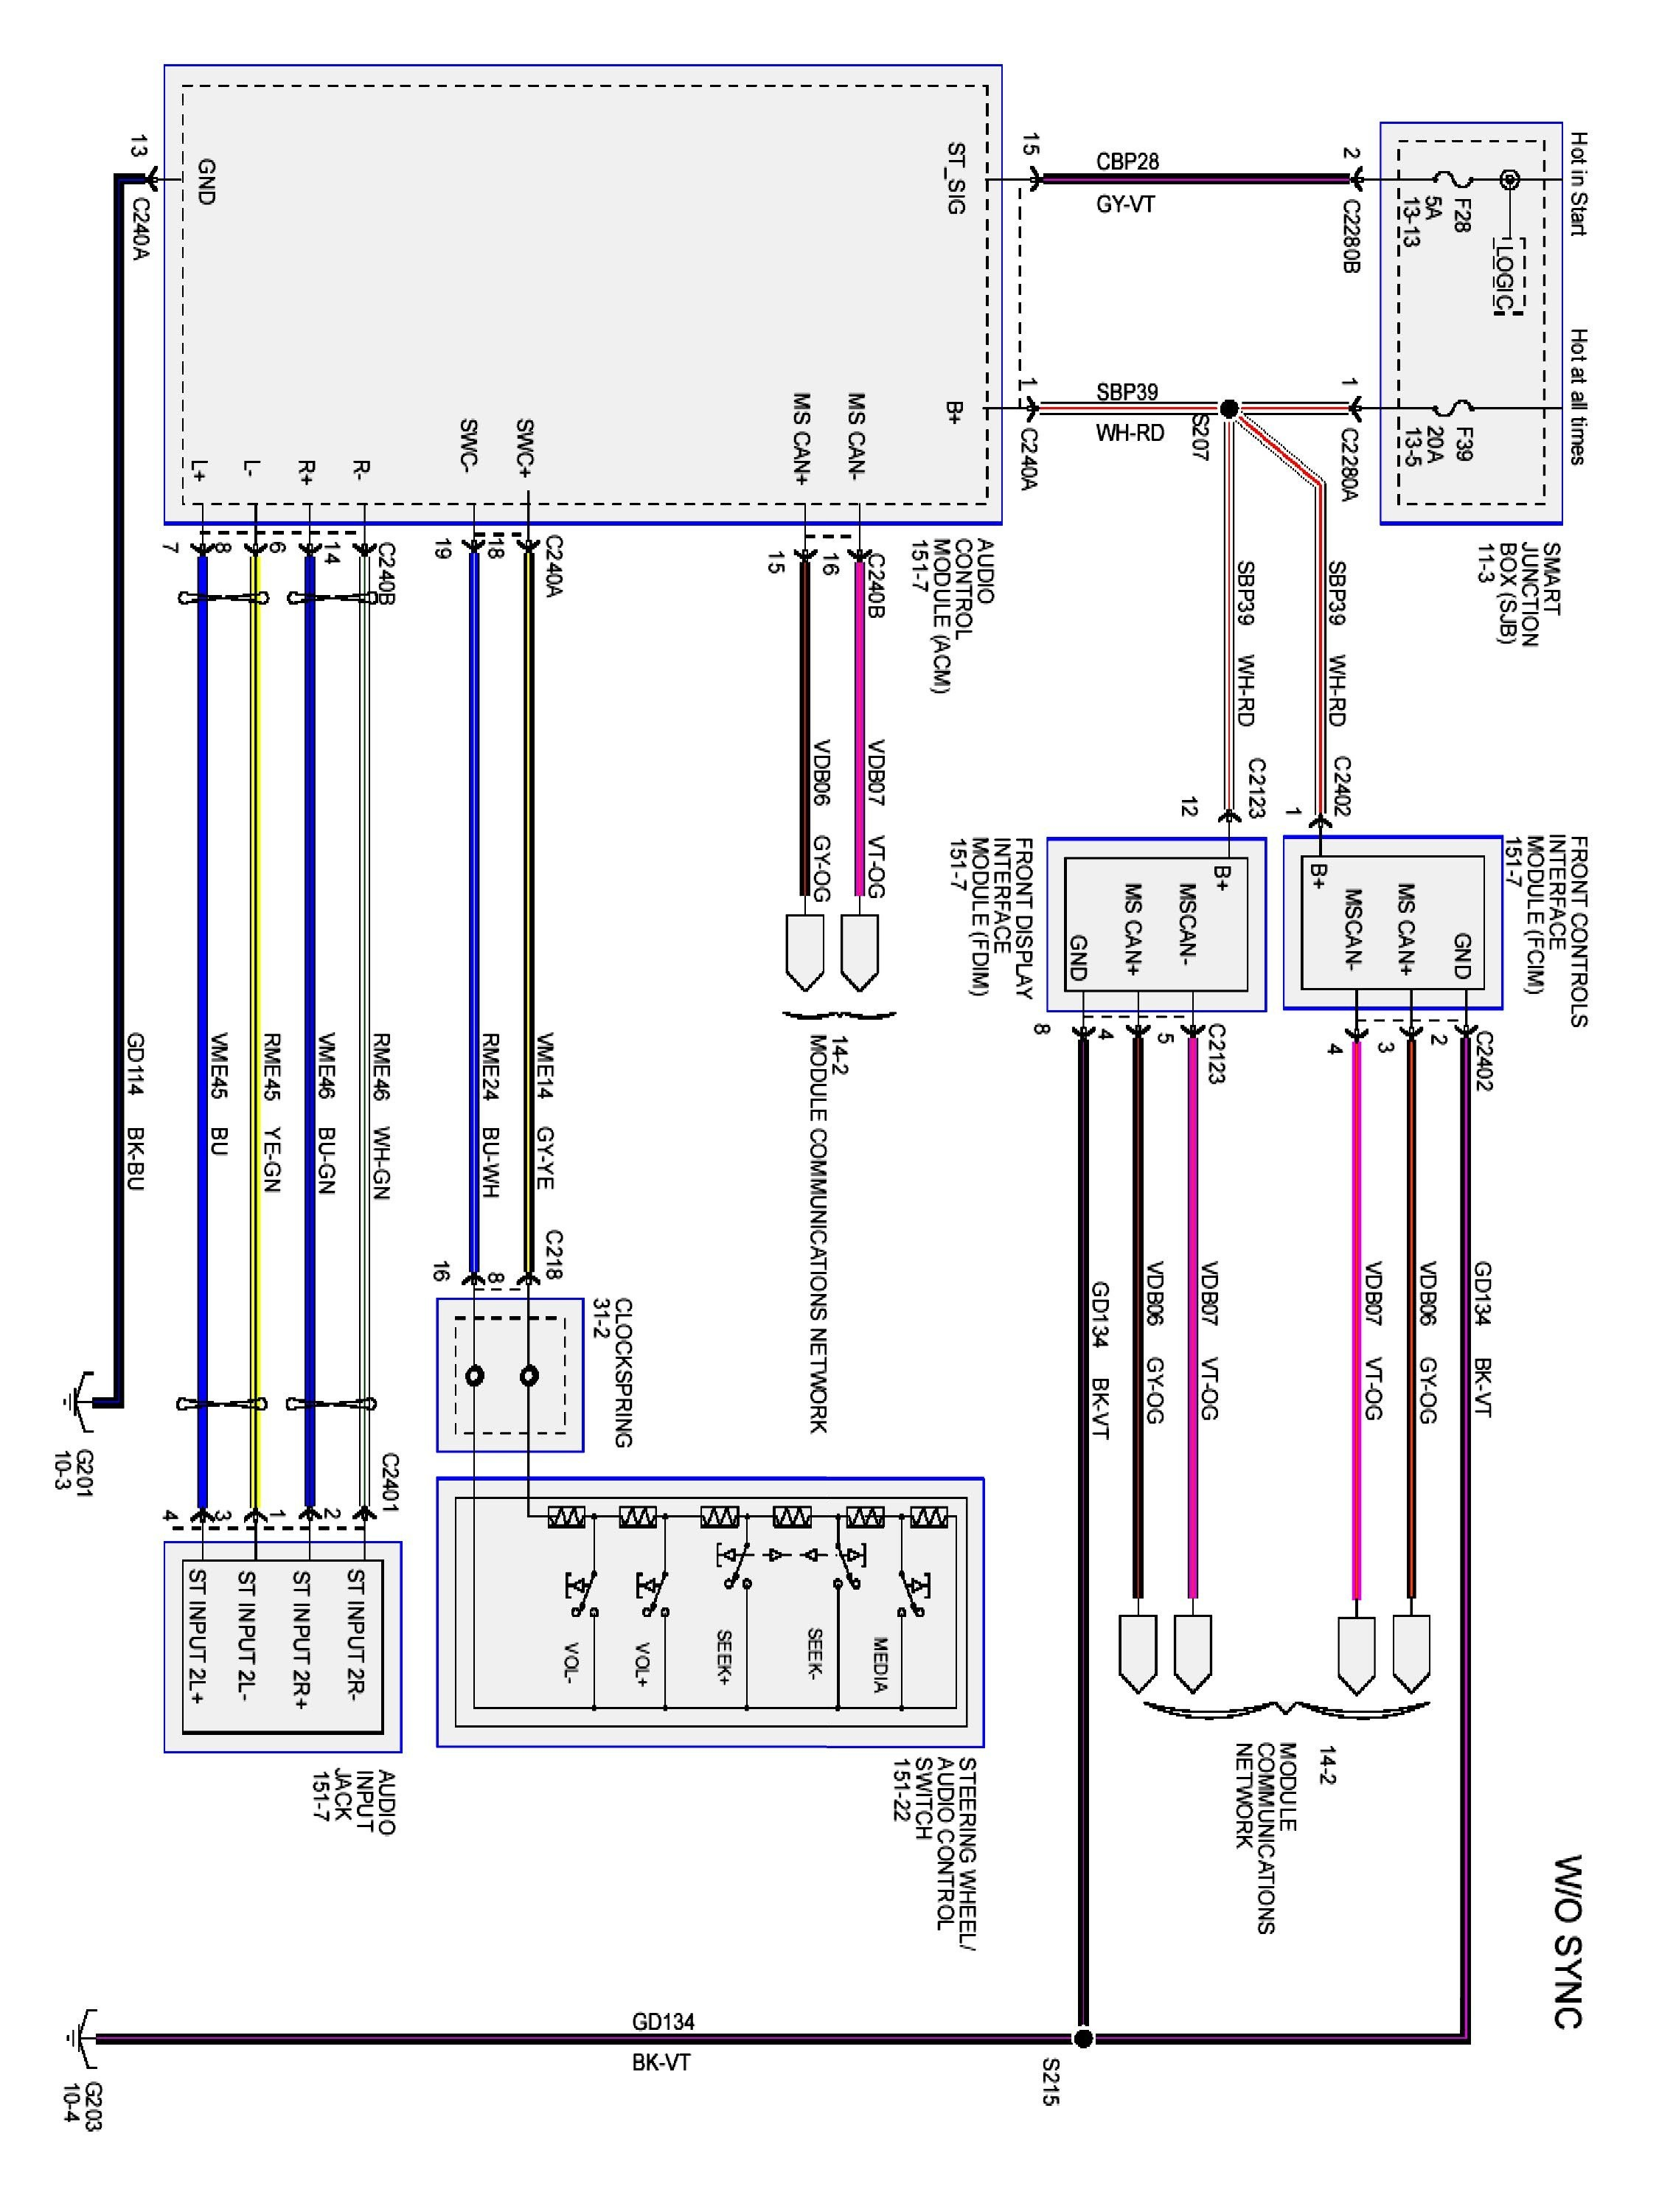 Wiring Diagram for Car Stereo with Amplifier Car Radio Cables Chevy Wiring Diagram Kit Speaker Wire Stereo Of Wiring Diagram for Car Stereo with Amplifier